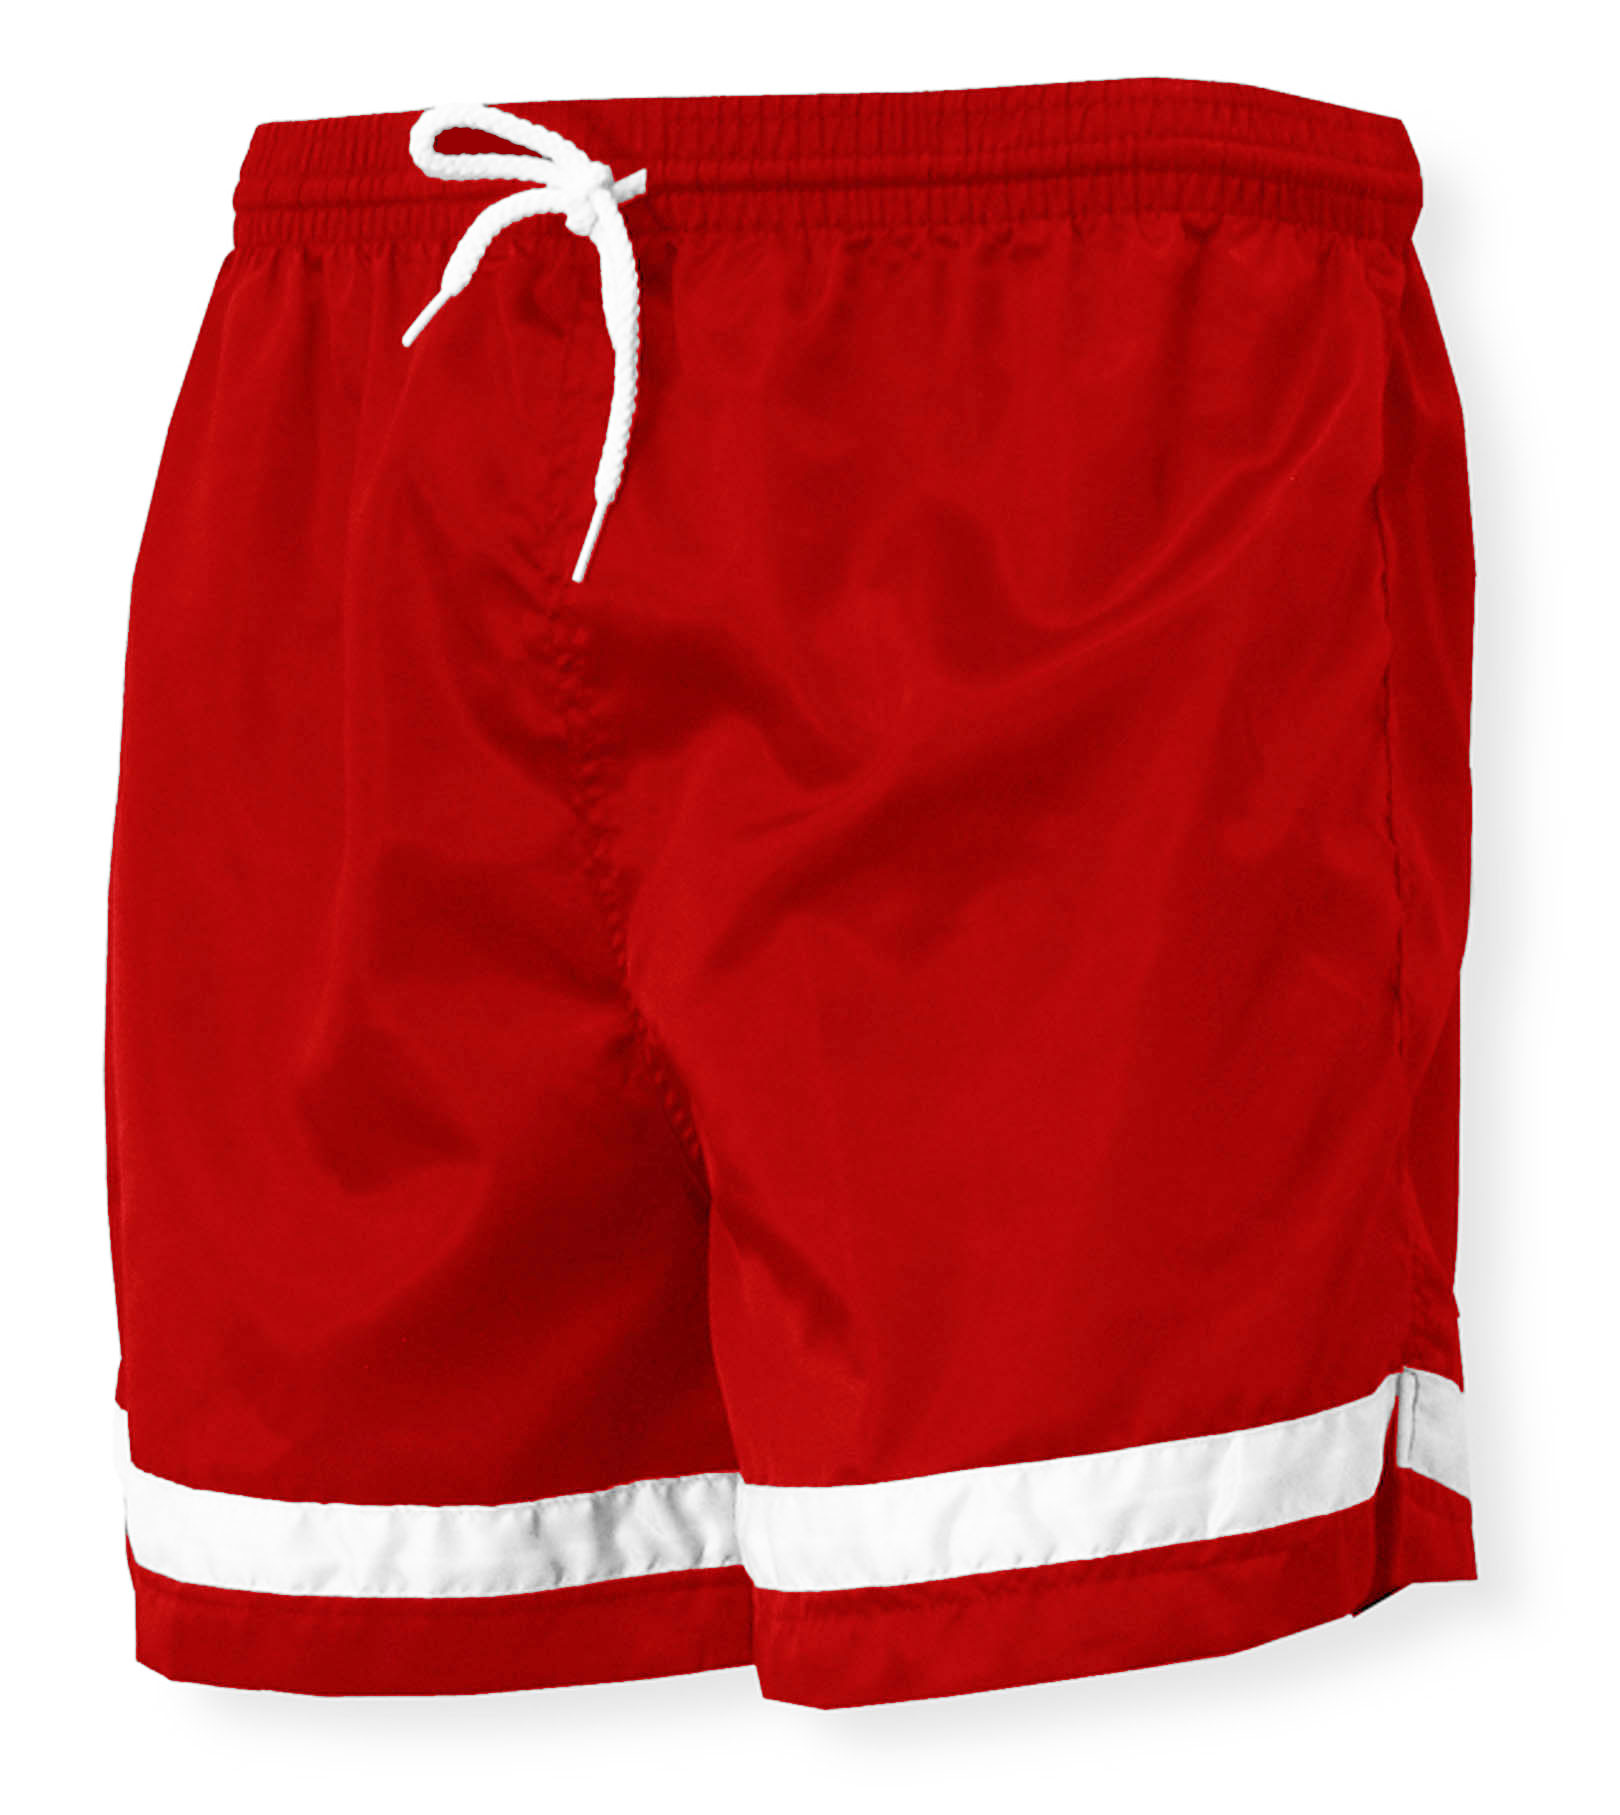 Vashon nylon soccer shorts in red with white striping by Code Four Athletics